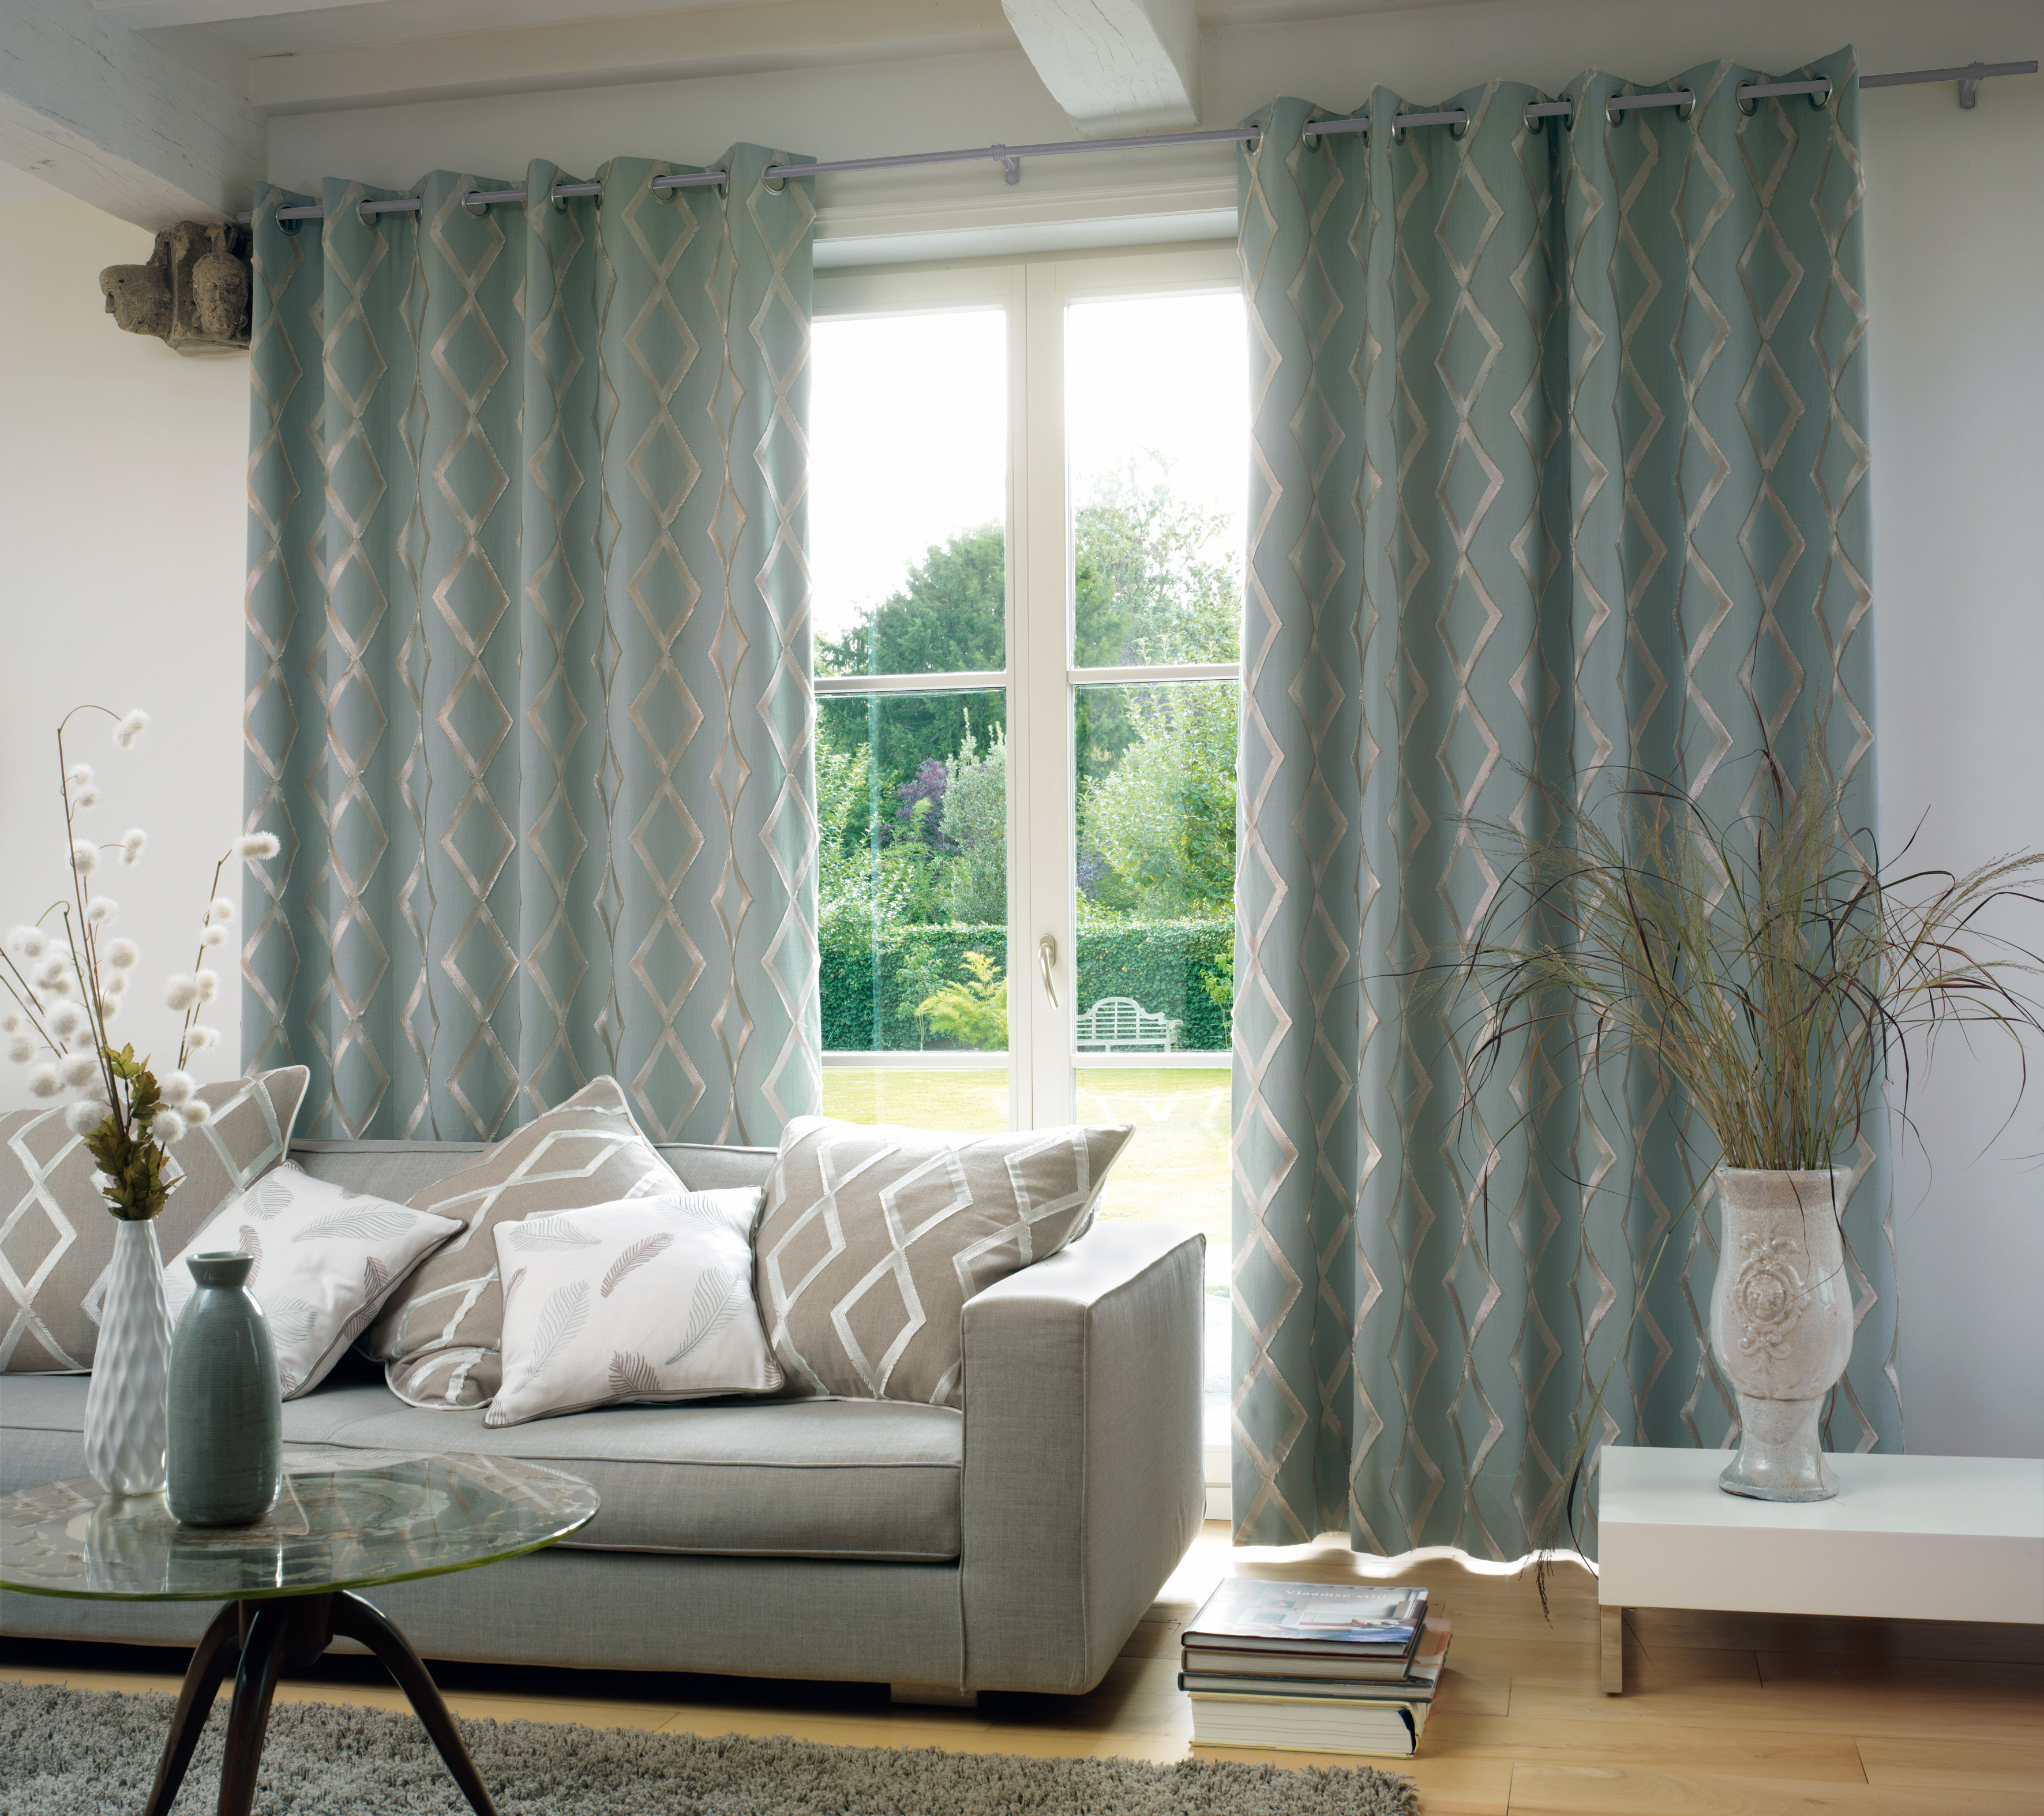 Magnificient Options for Curtains Window Curtain Designs